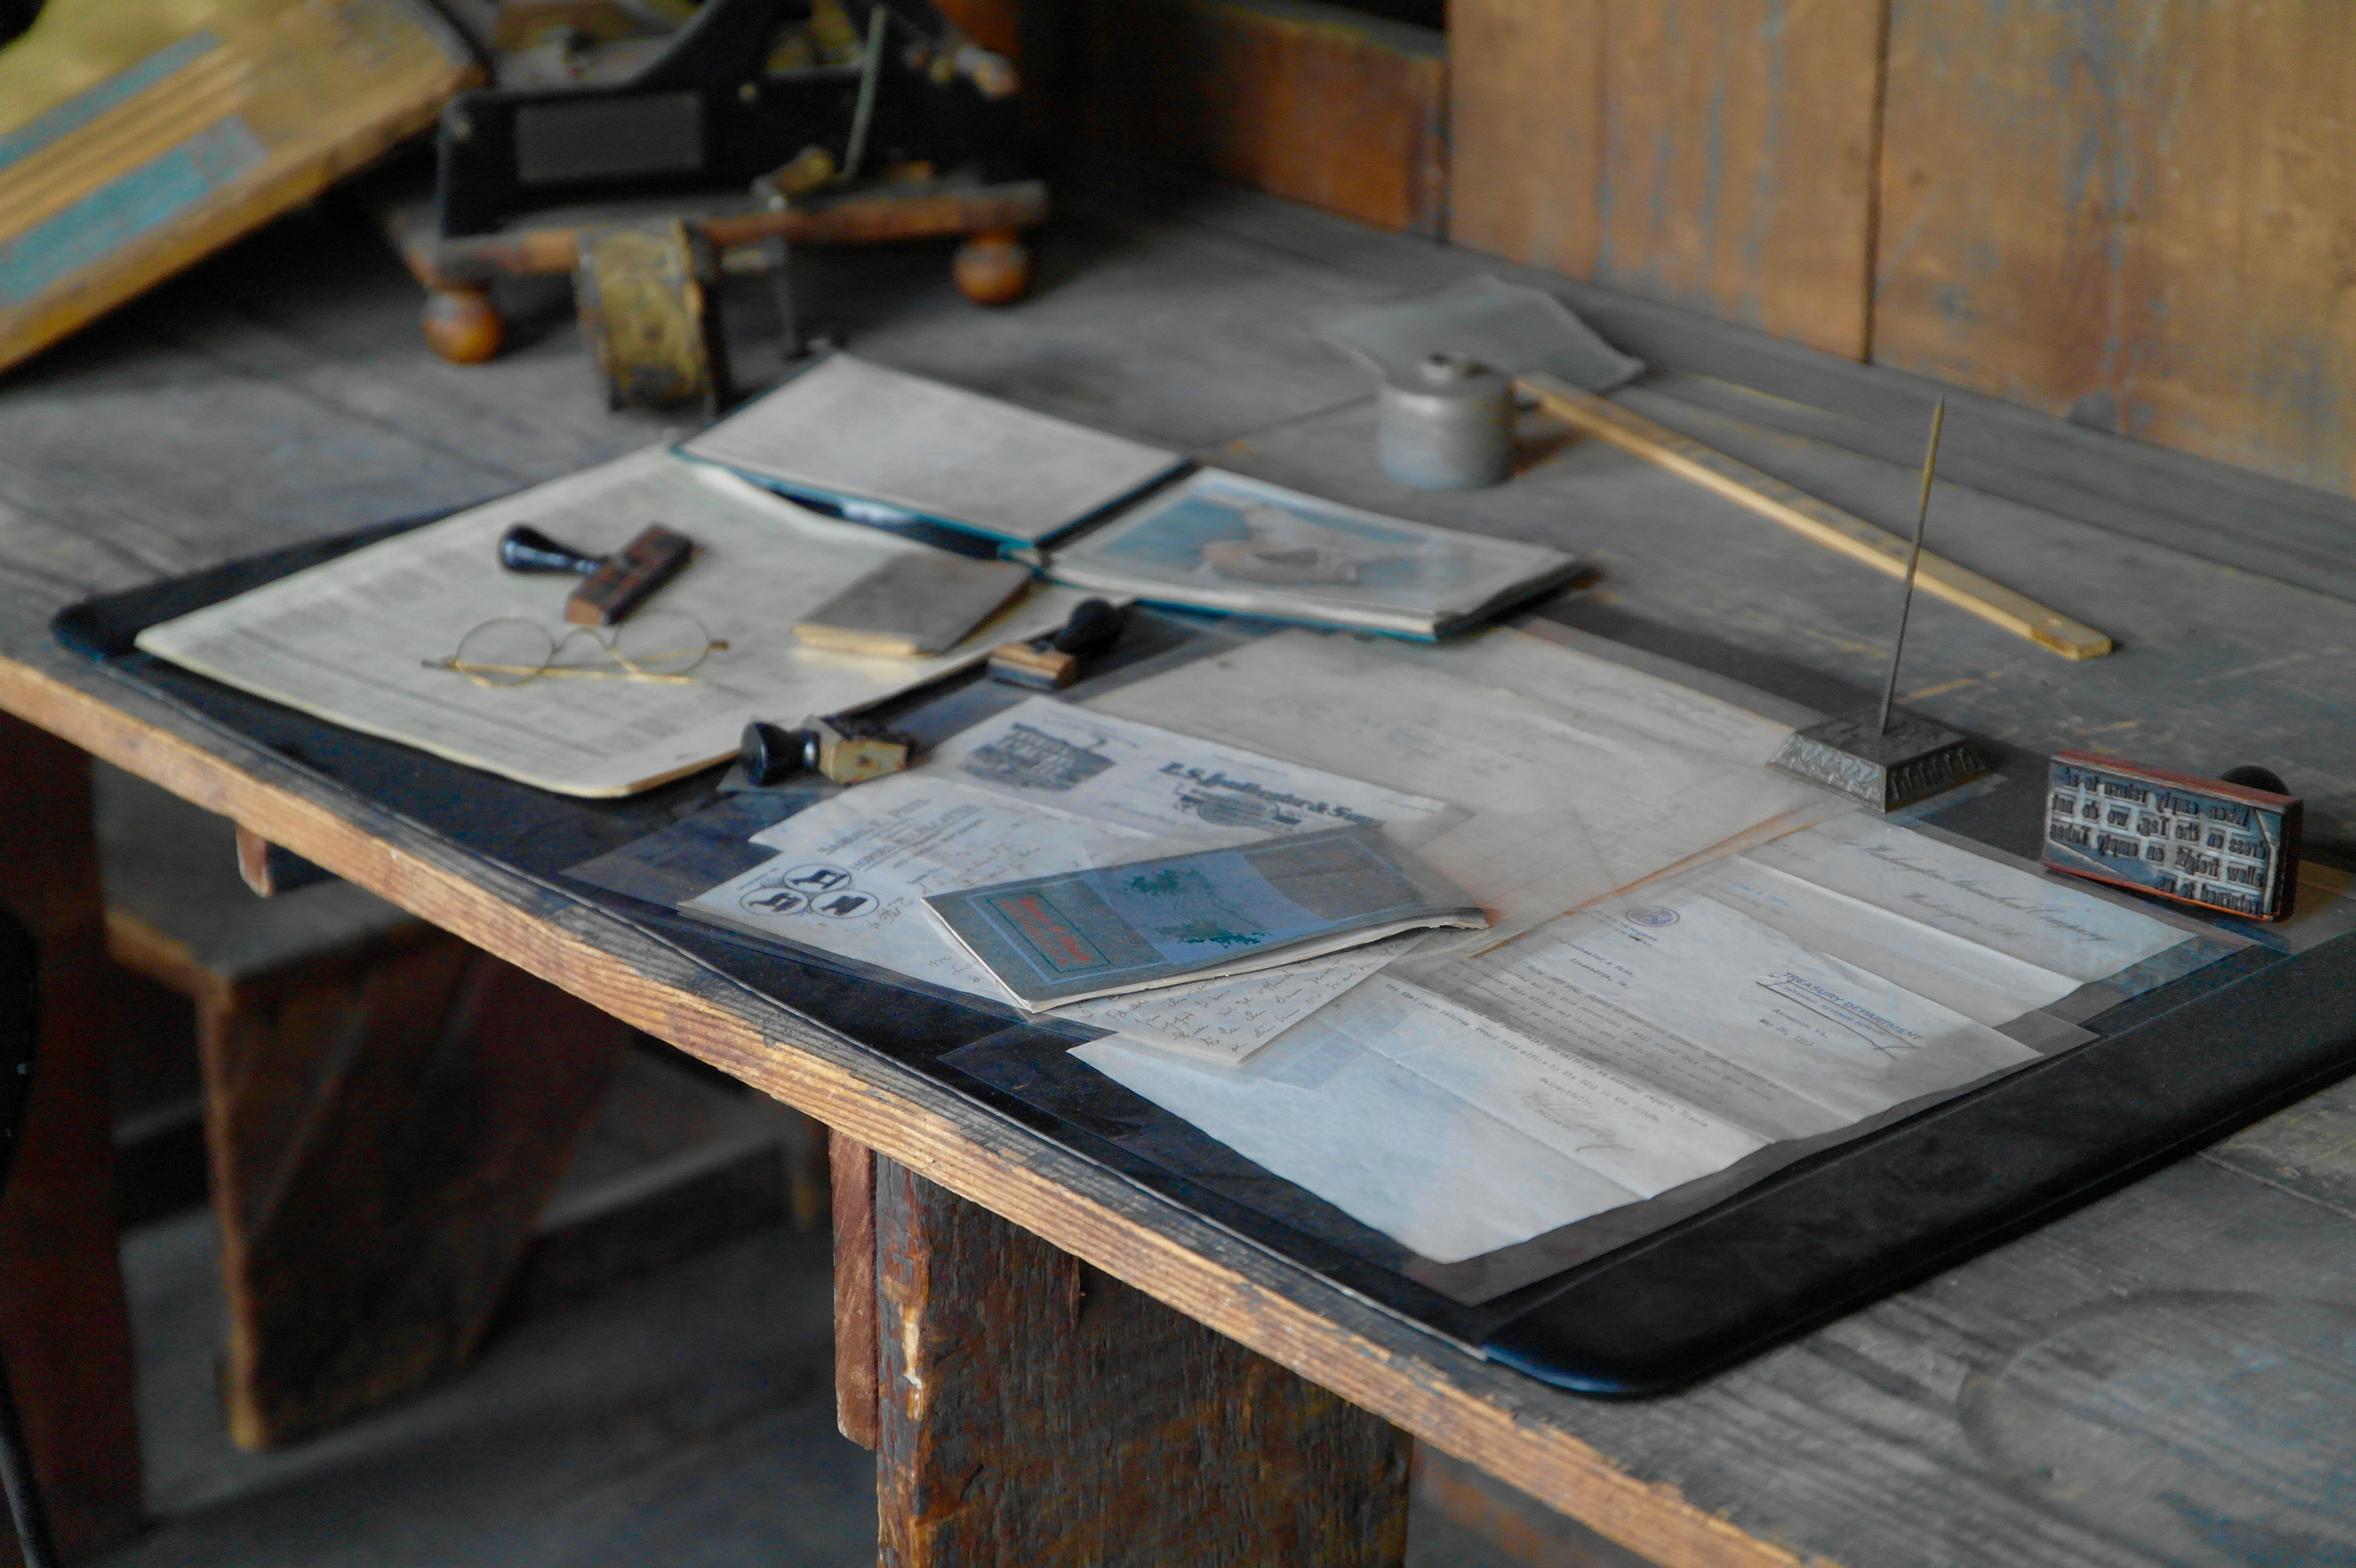 Documents and maps on a messy workbench